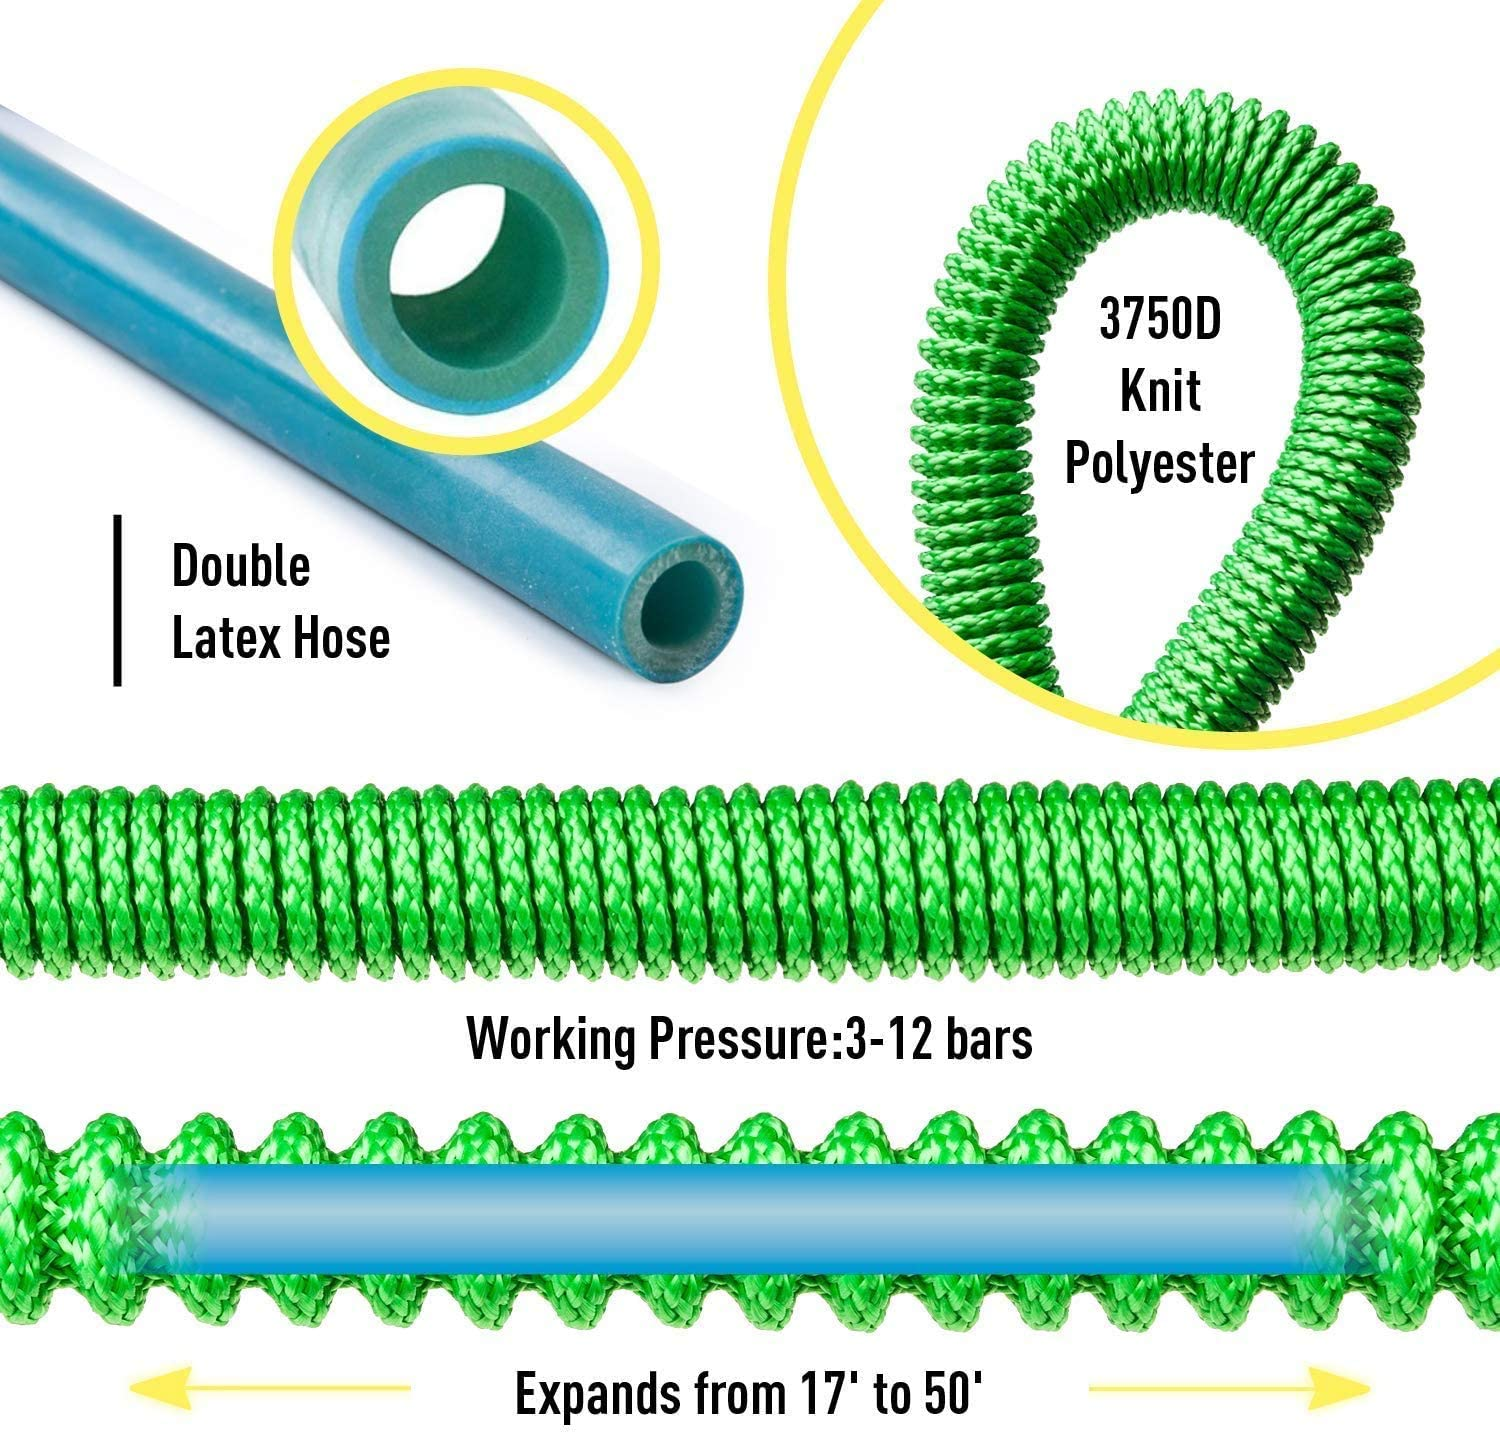 Garden Hose 25-100ft Expandable Garden Hose, Kink-Free Flexible Water Hose with 7-Pattern Spray Nozzle, green,50ft 100ft